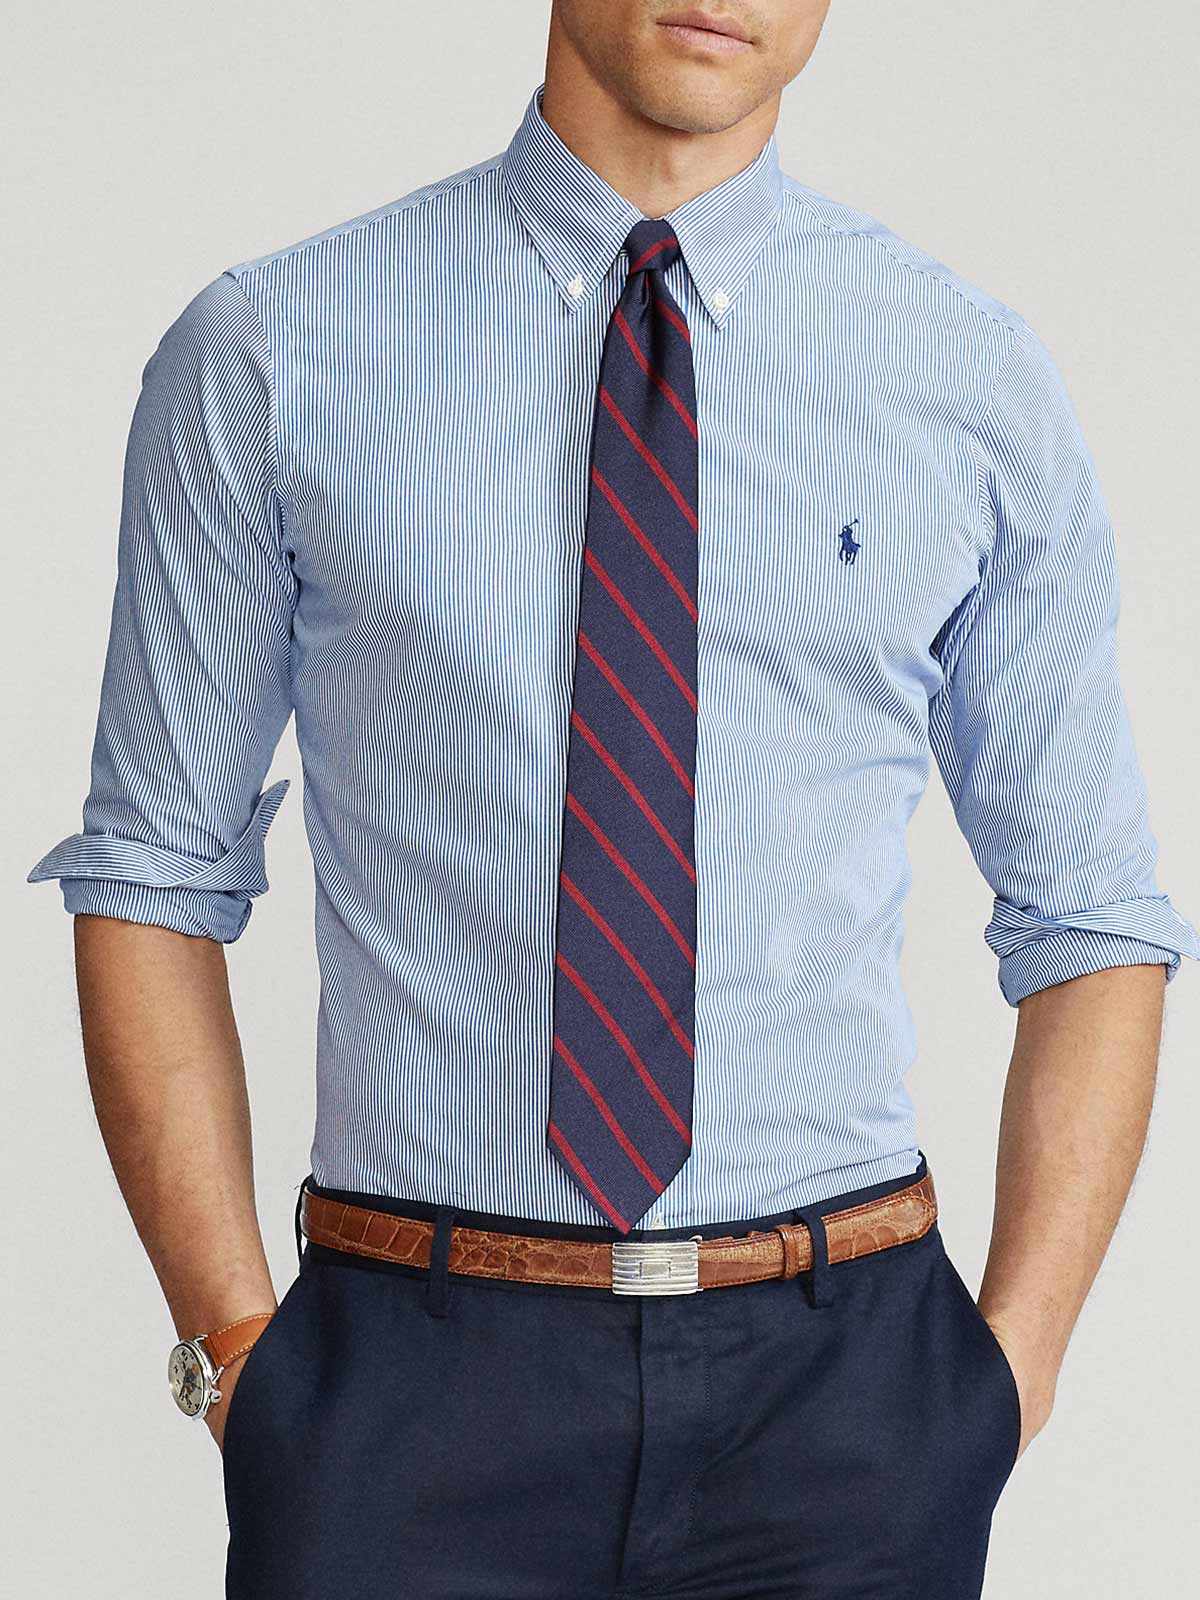 Picture of POLO RALPH LAUREN | Men's Custom Fit Striped Shirt